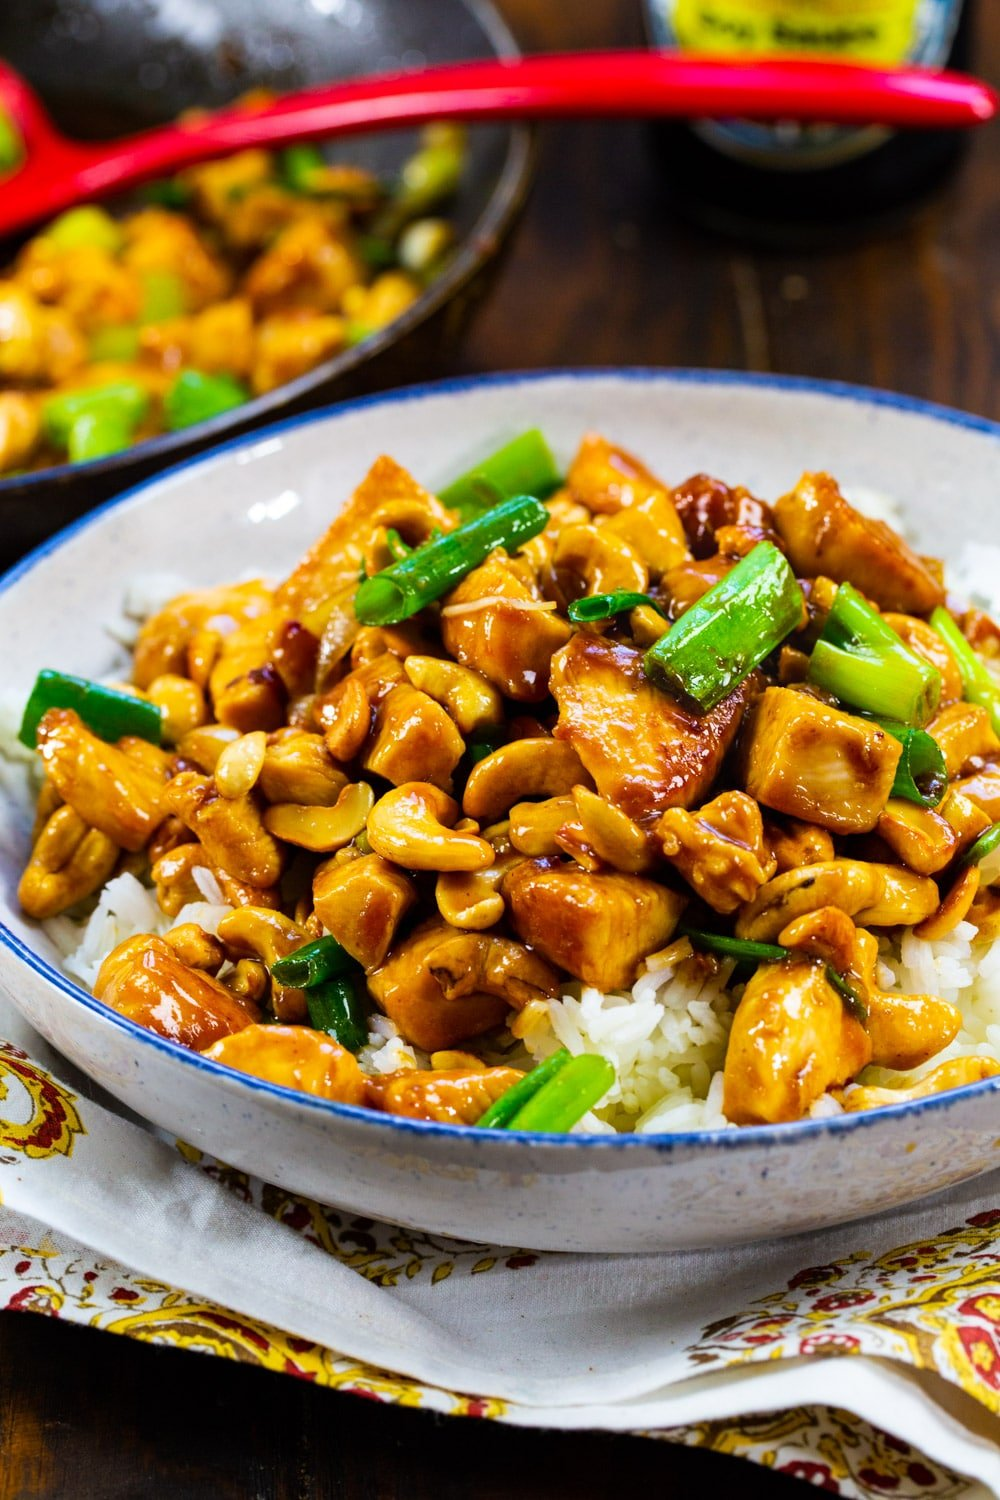 Cashew Chicken over white rice in a bowl.